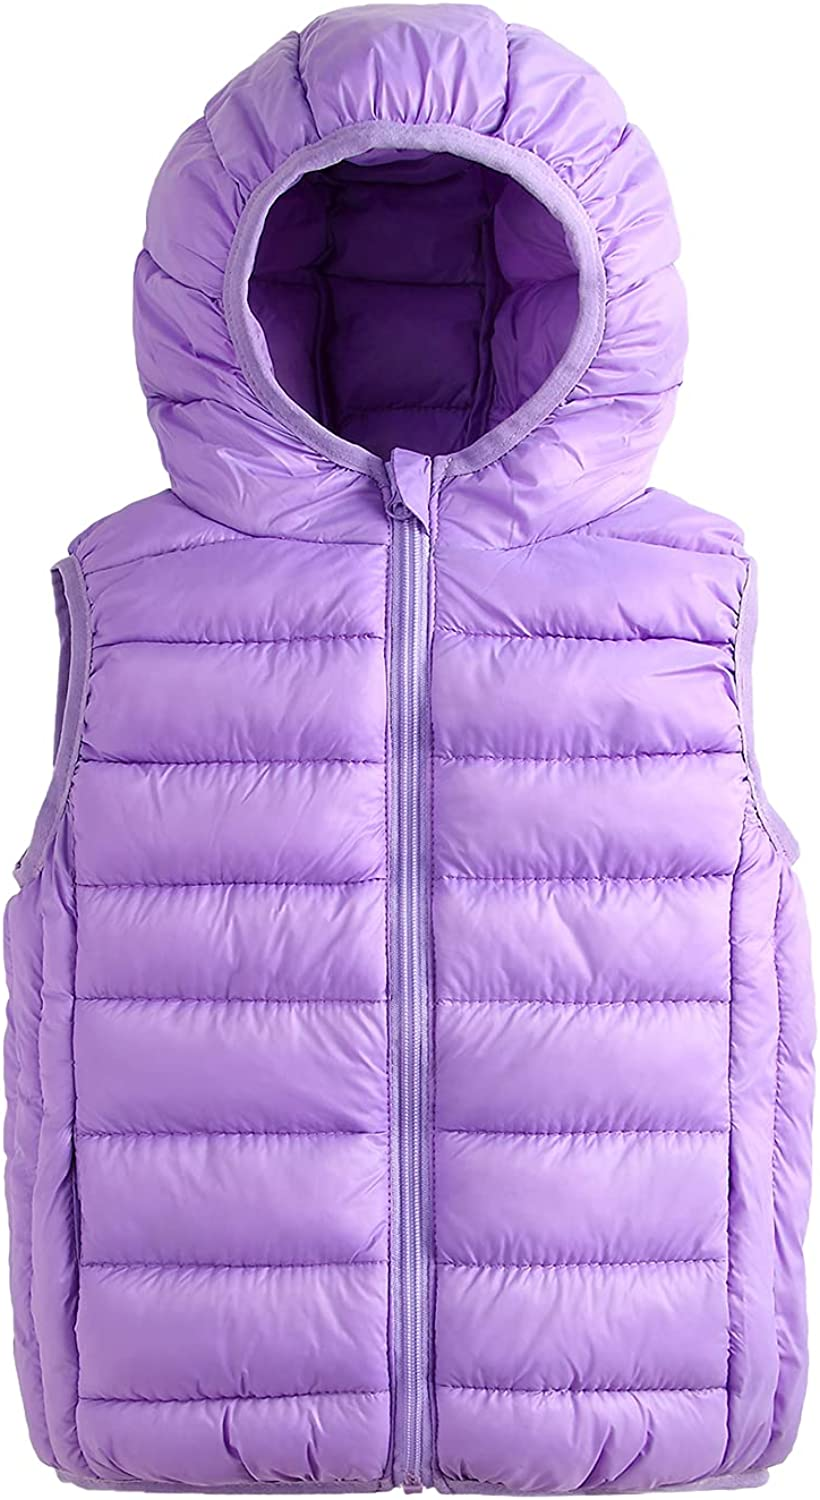 ELIKIDSTO Max 84% OFF Boys Girls Lightweight San Francisco Mall Packable Warm Cotton Hood Down